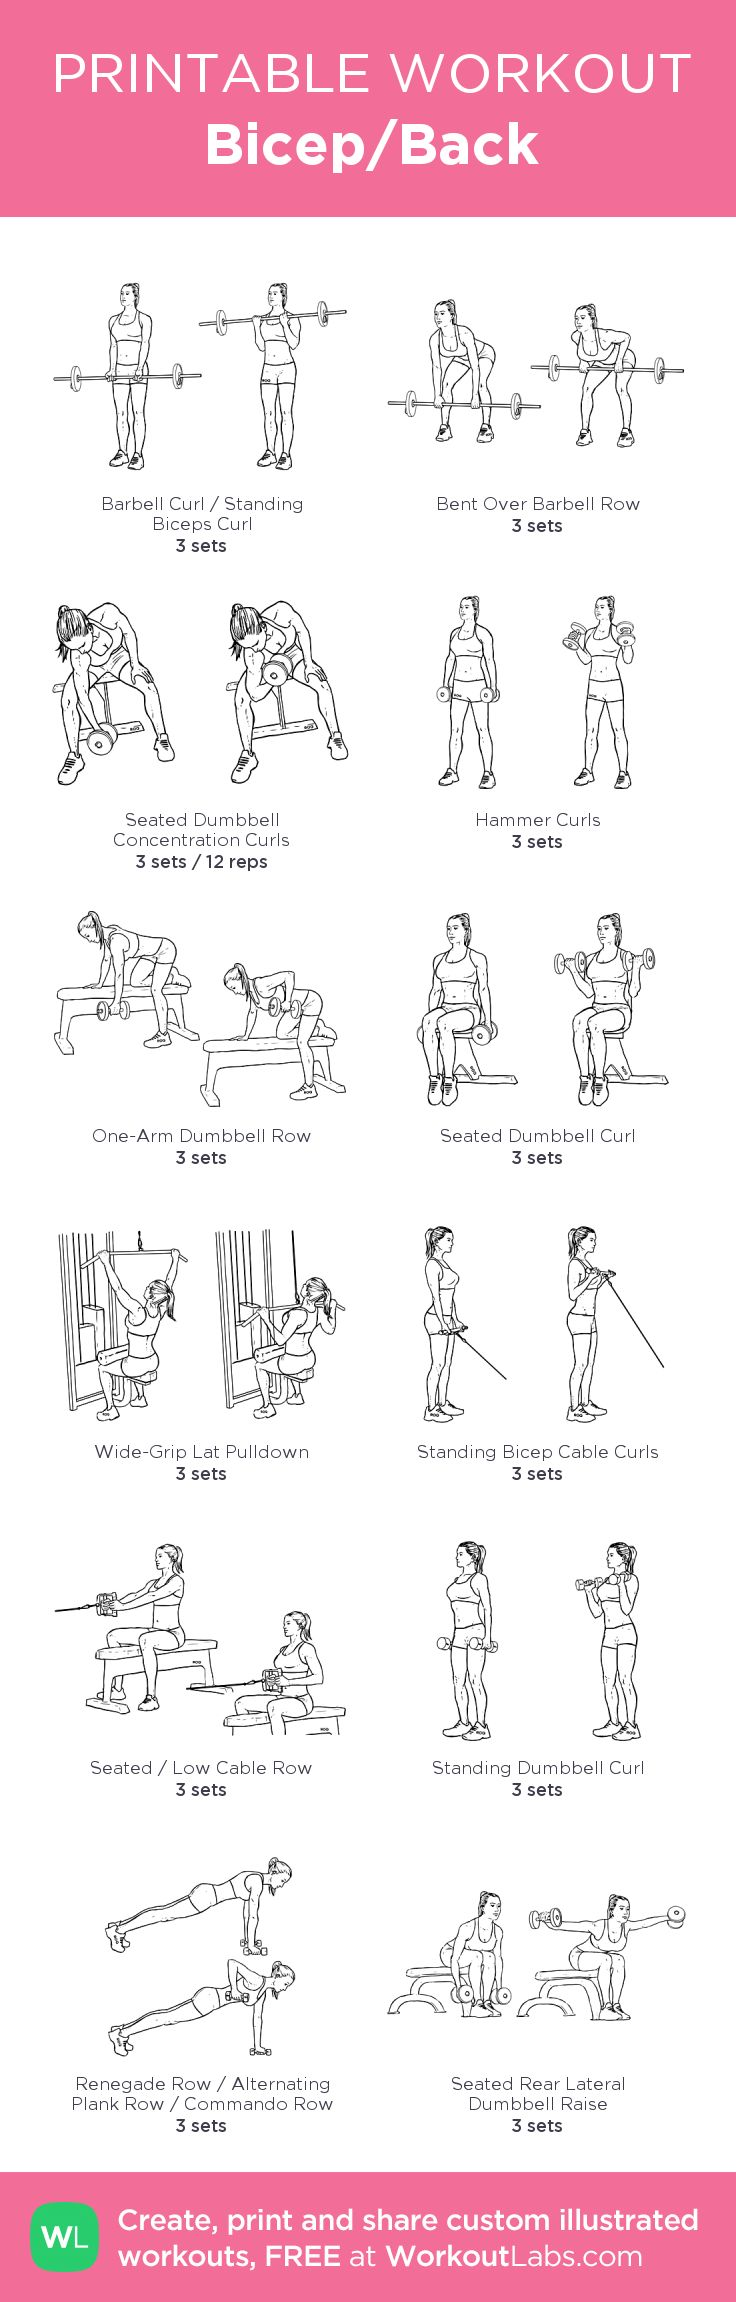 Bicep/Back –my custom workout created at WorkoutLabs.com • Click through to download as printable PDF! #customworkout